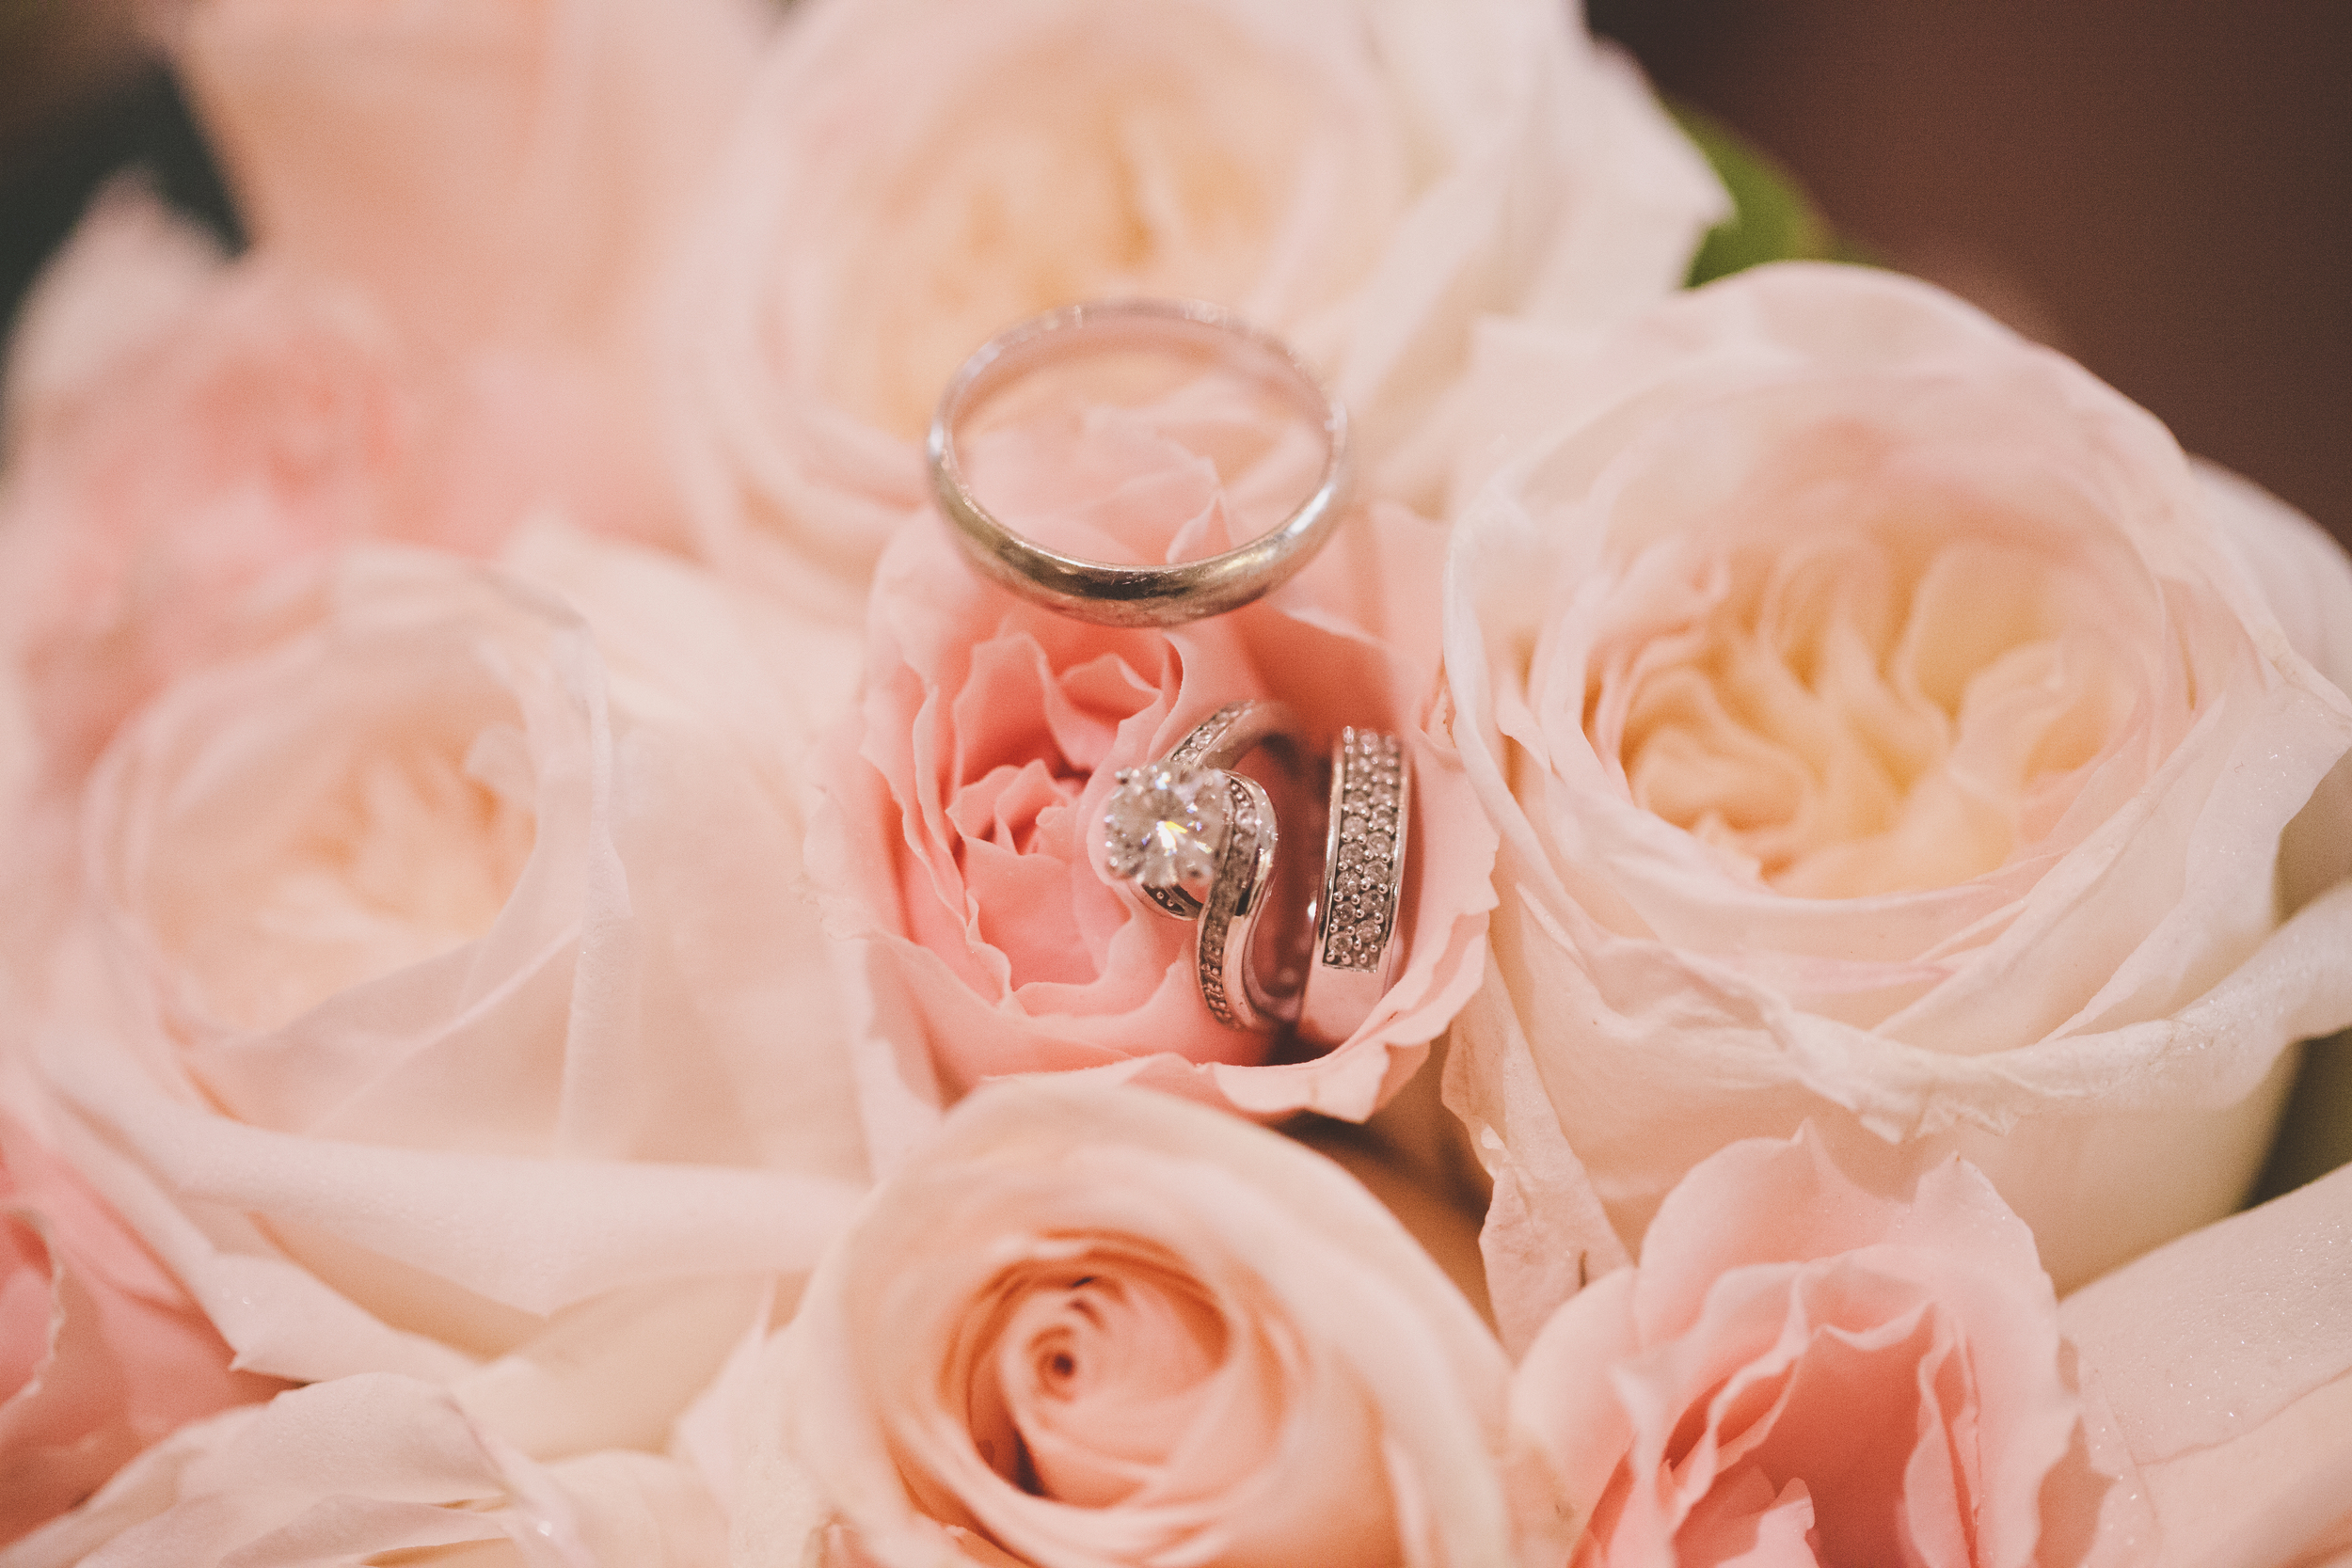 wedding rings in a pink rose bouqet